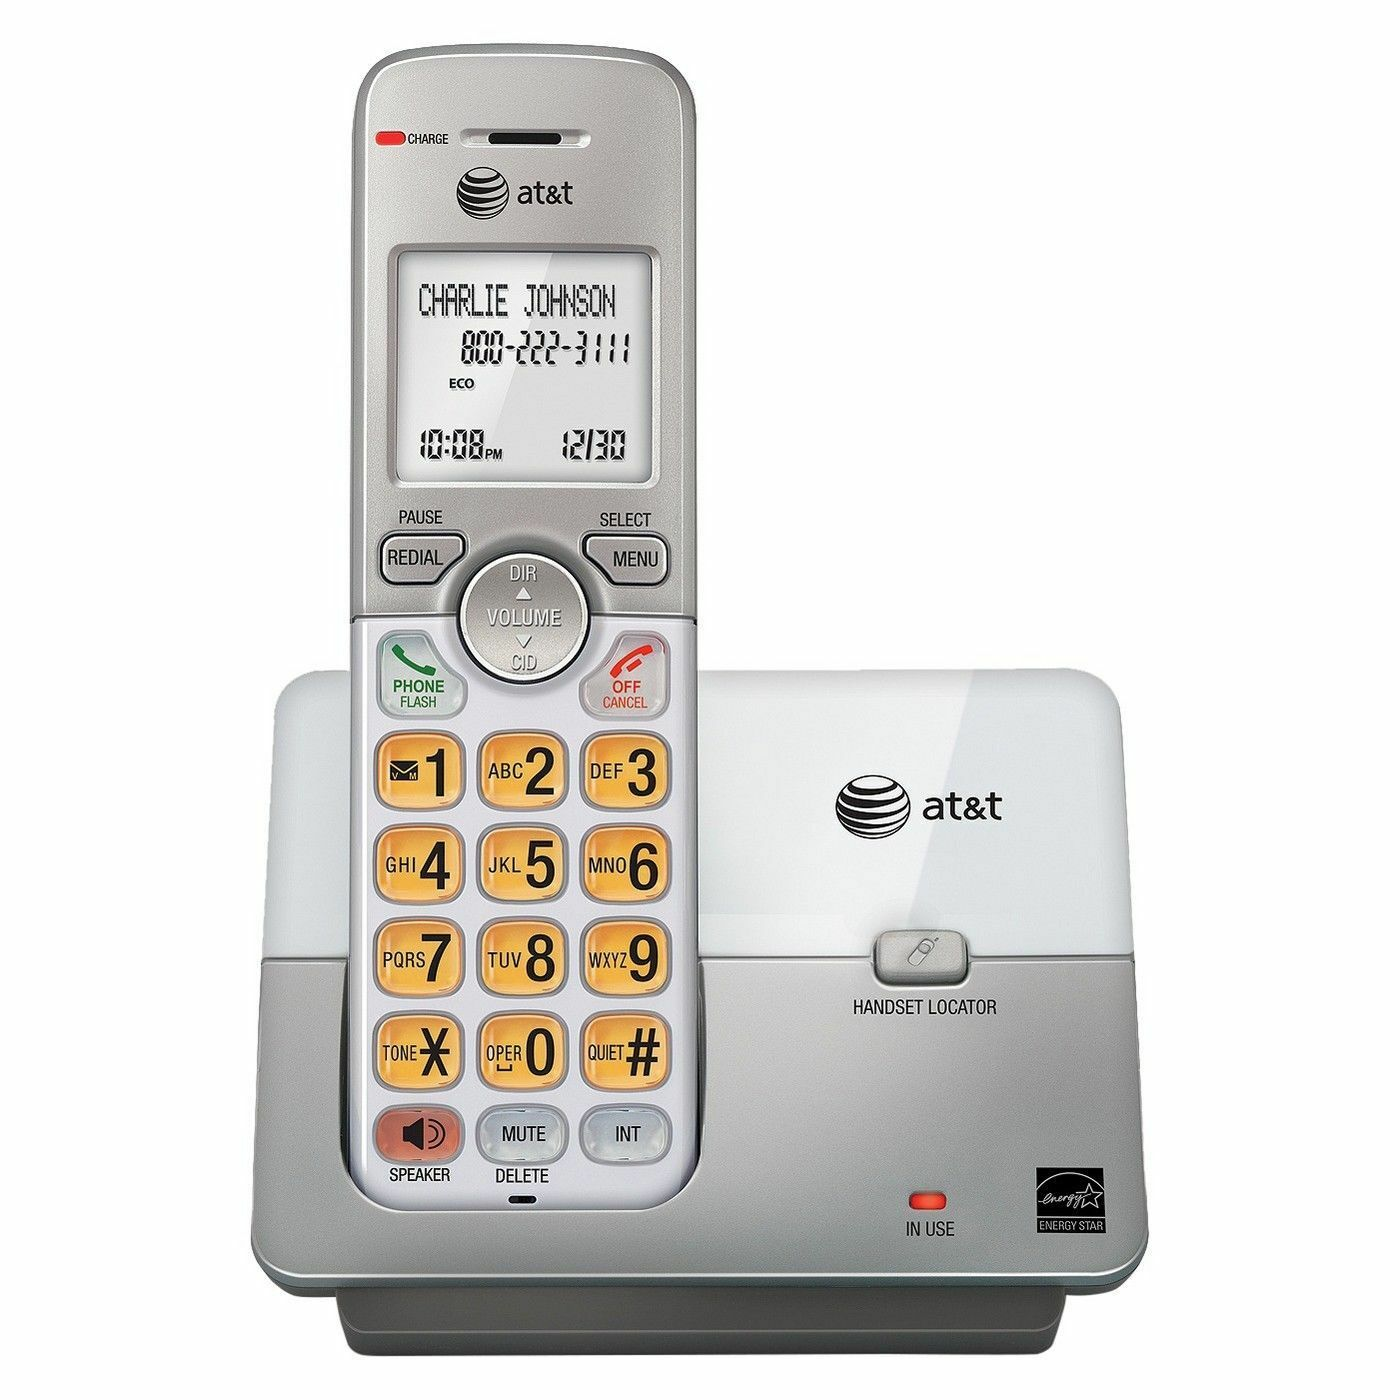 AT&T DECT 6.0 Phone With Caller ID/Call Waiting-1 Cordless Handset-Silver Color